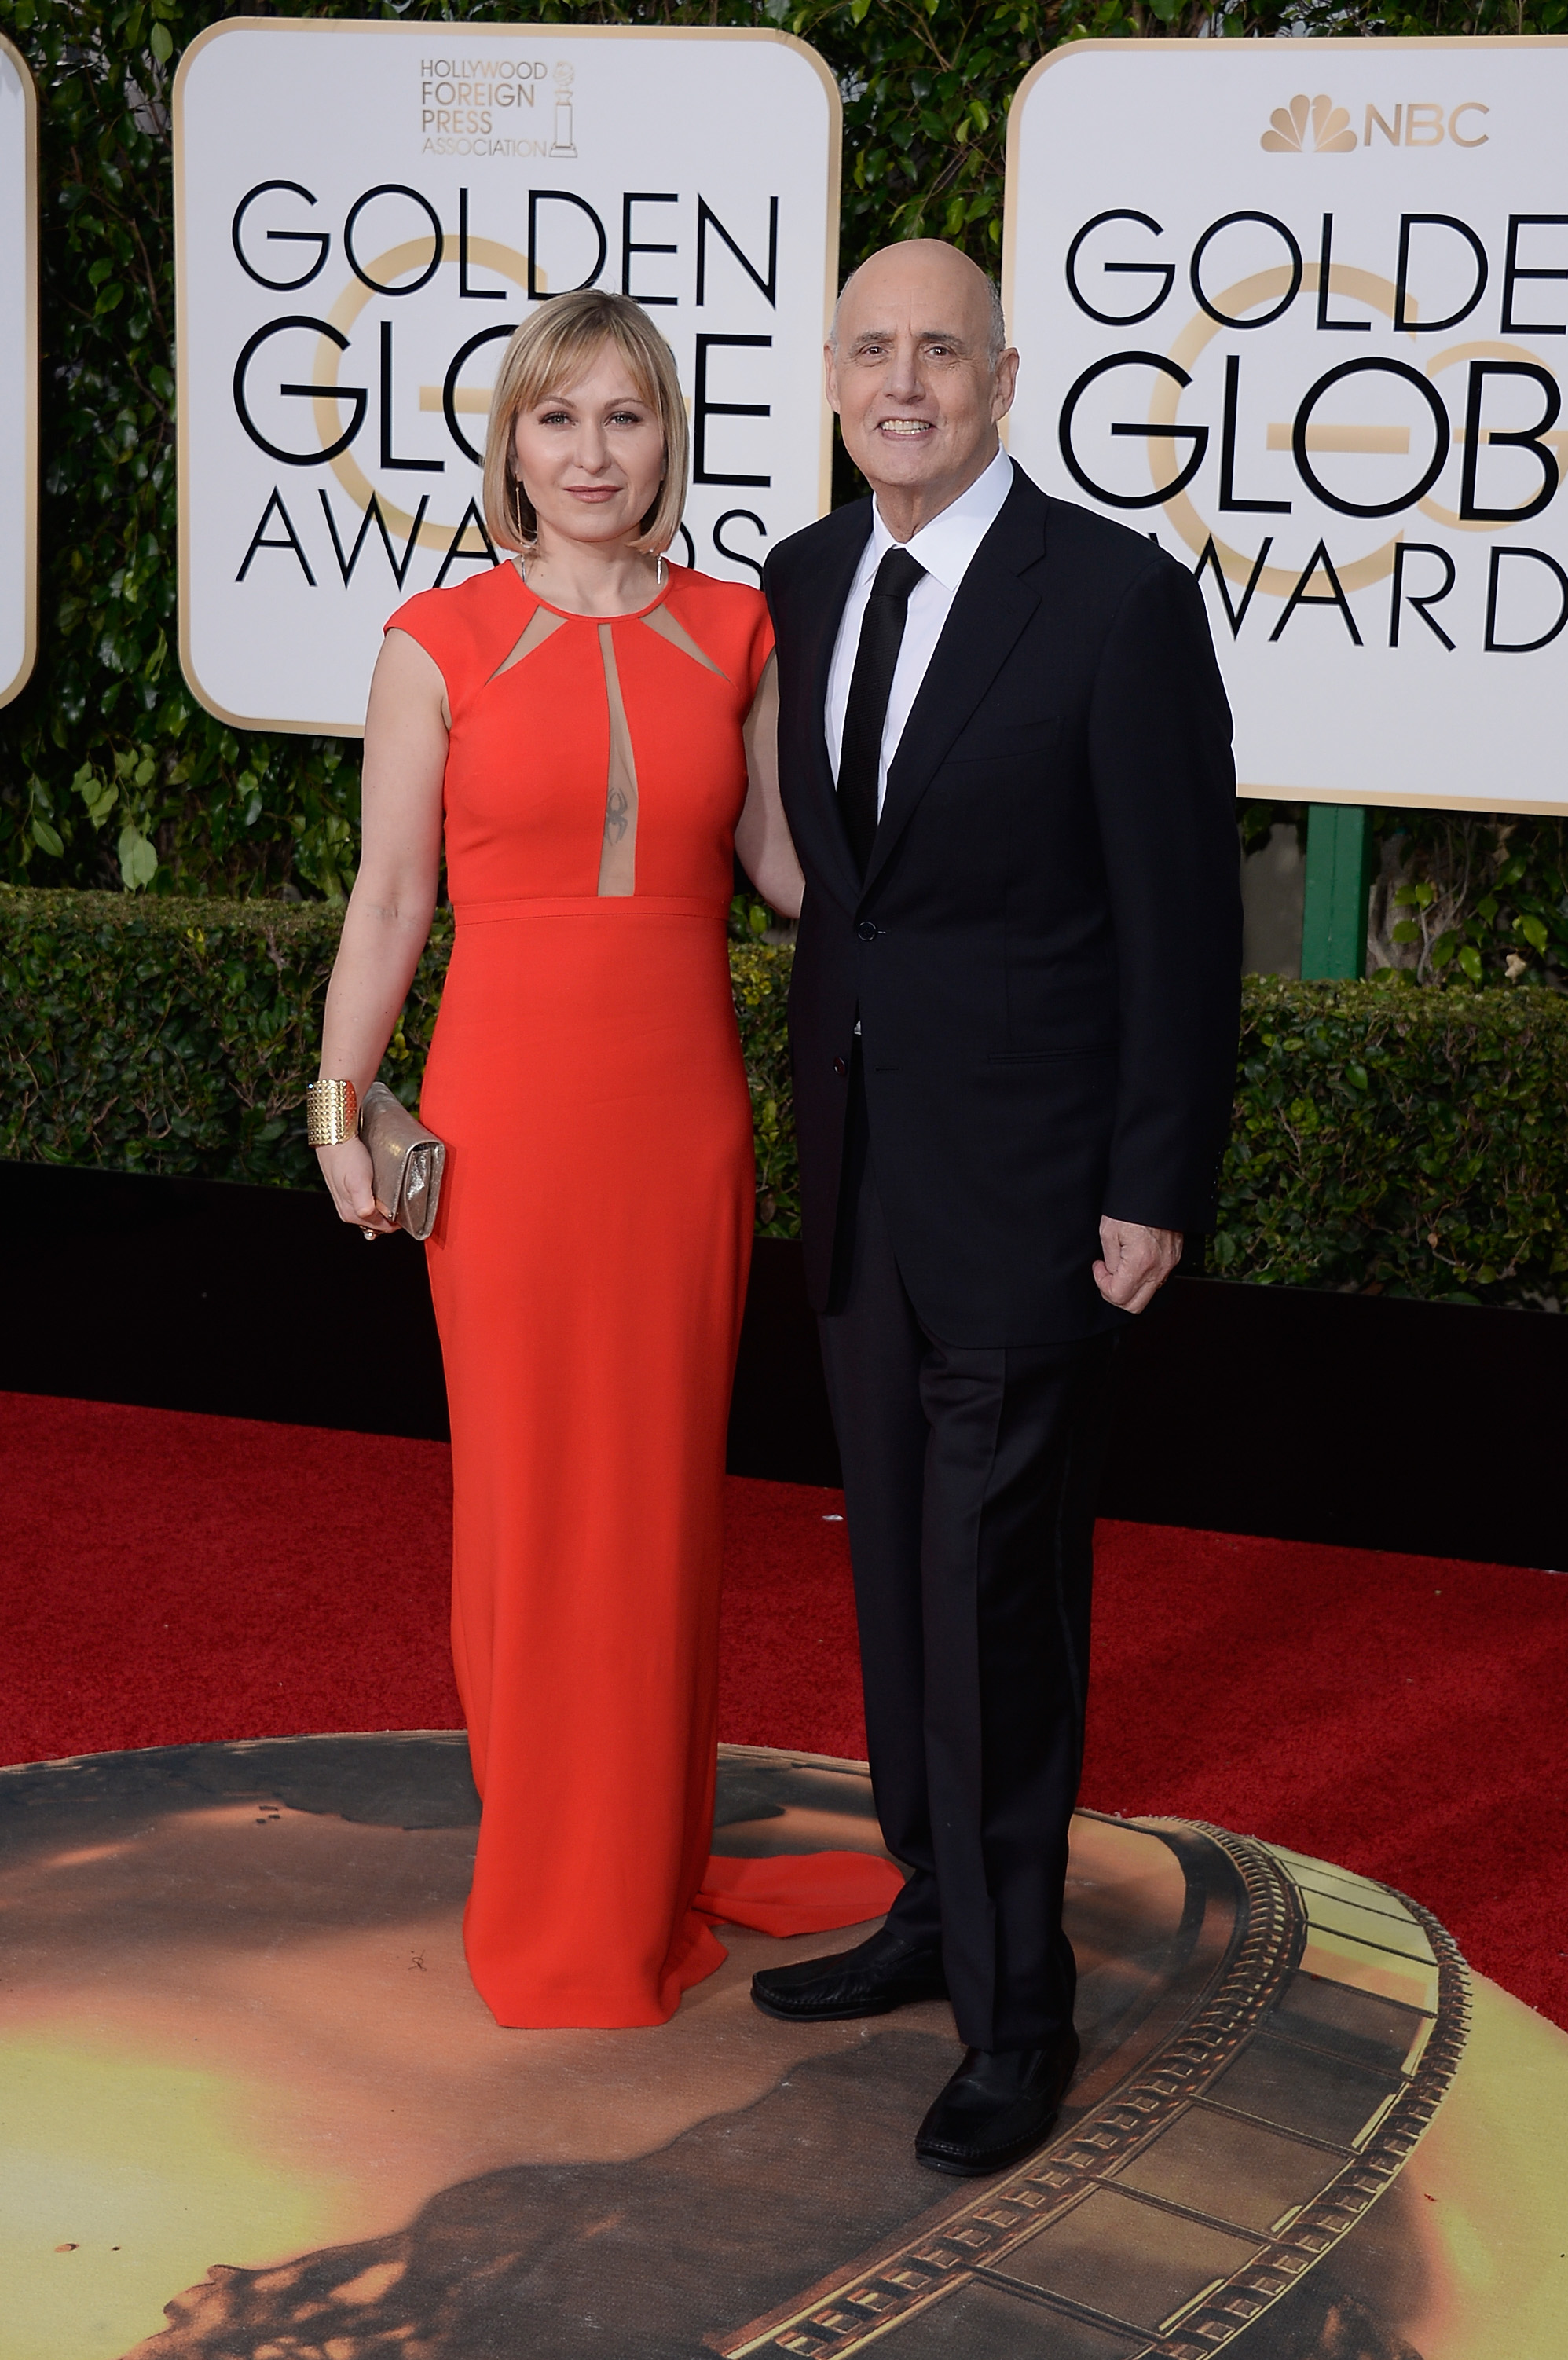 Kasia Ostlun and Jeffrey Tambor arrive to the 73rd Annual Golden Globe Awards on Jan. 10, 2016 in Beverly Hills.